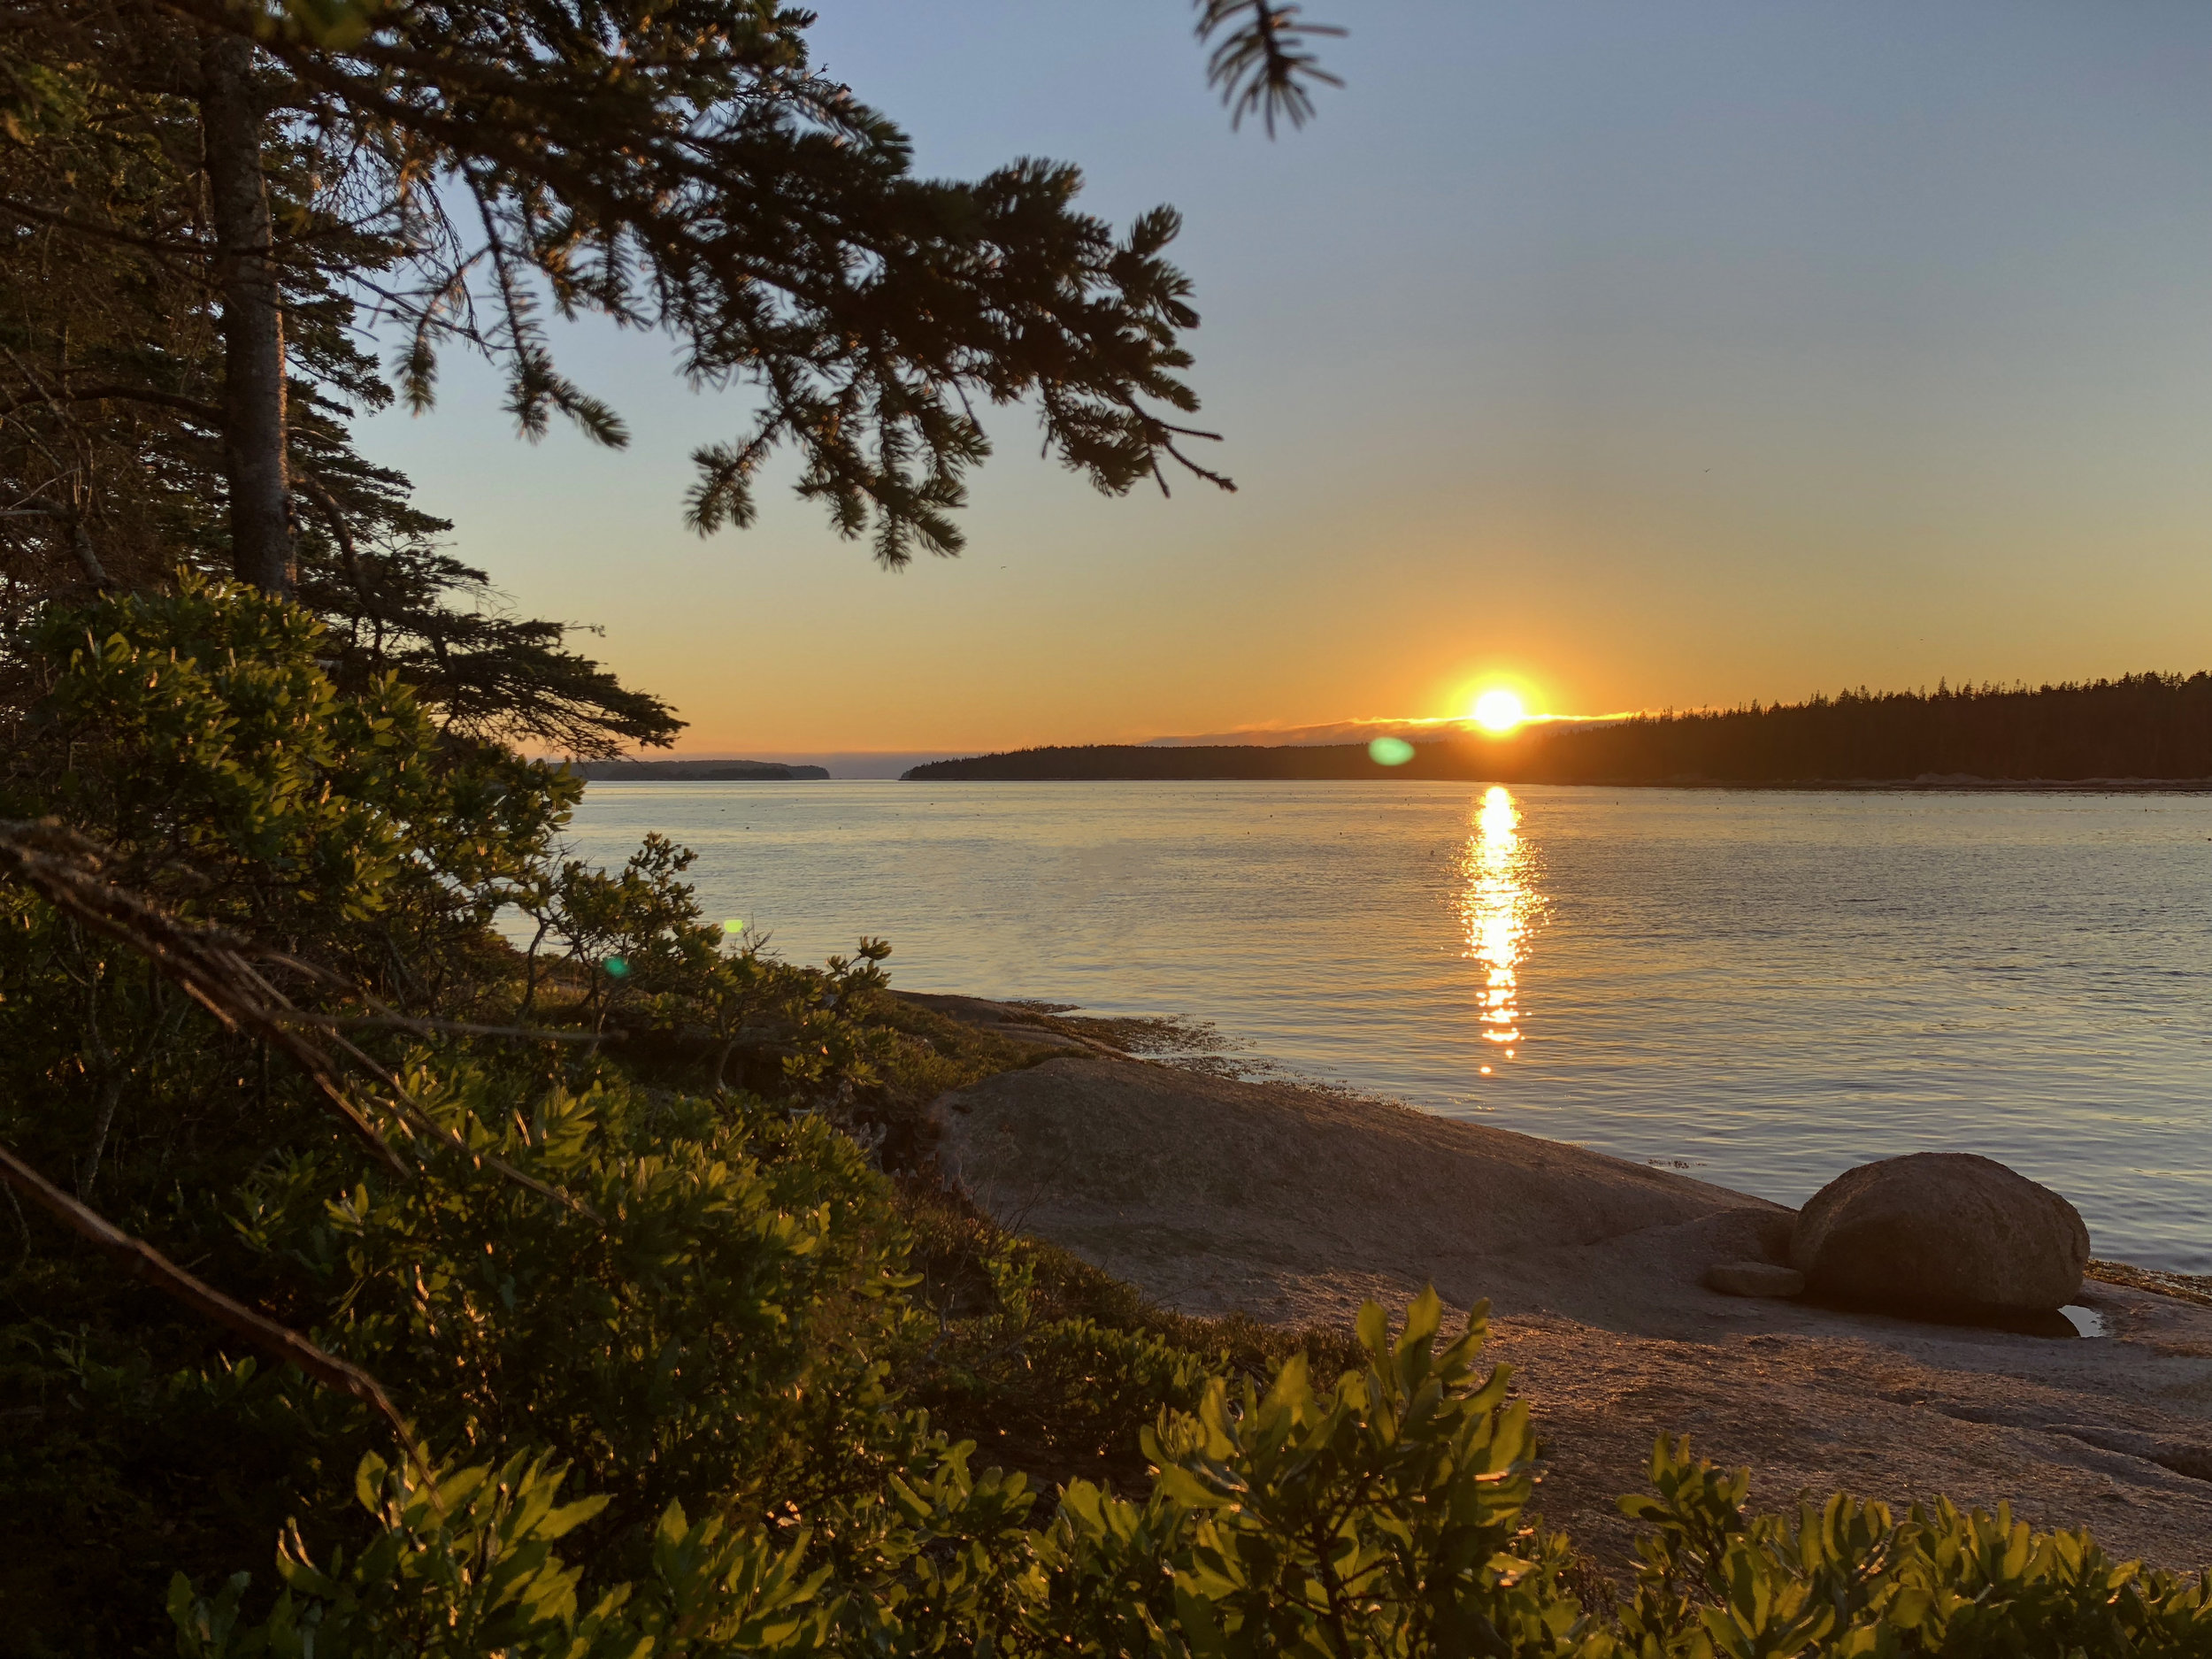 Sunset over Coombs Island ( photo by John Bacon )